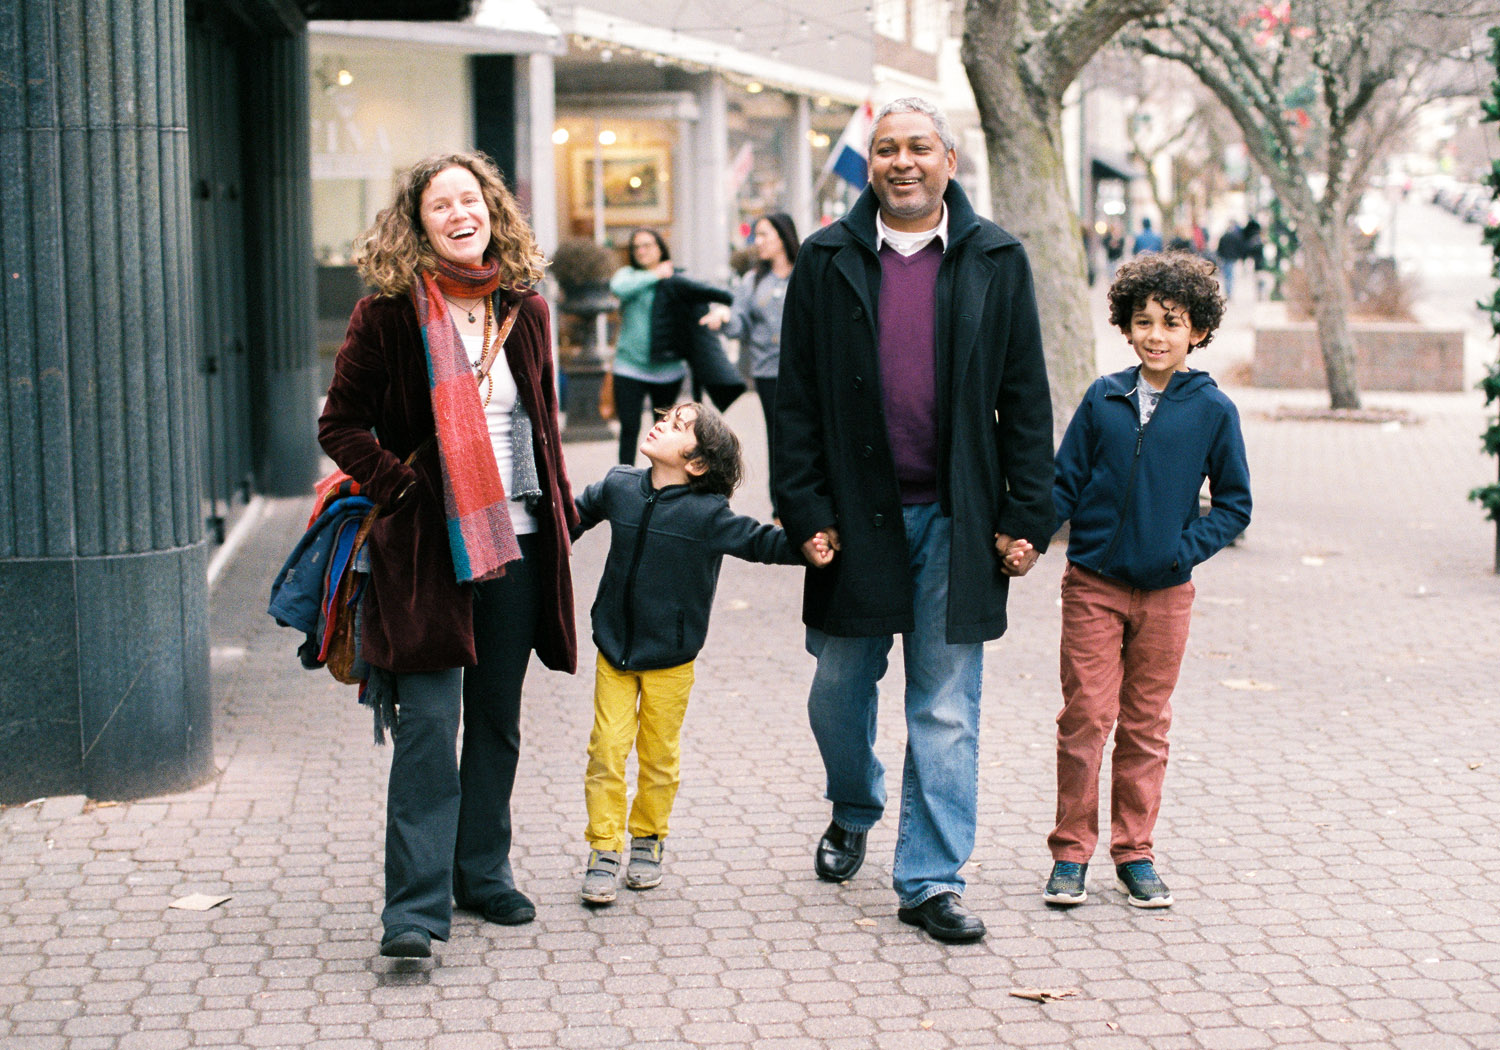 New Jersey New York Candid Family Portrait Photography.jpg